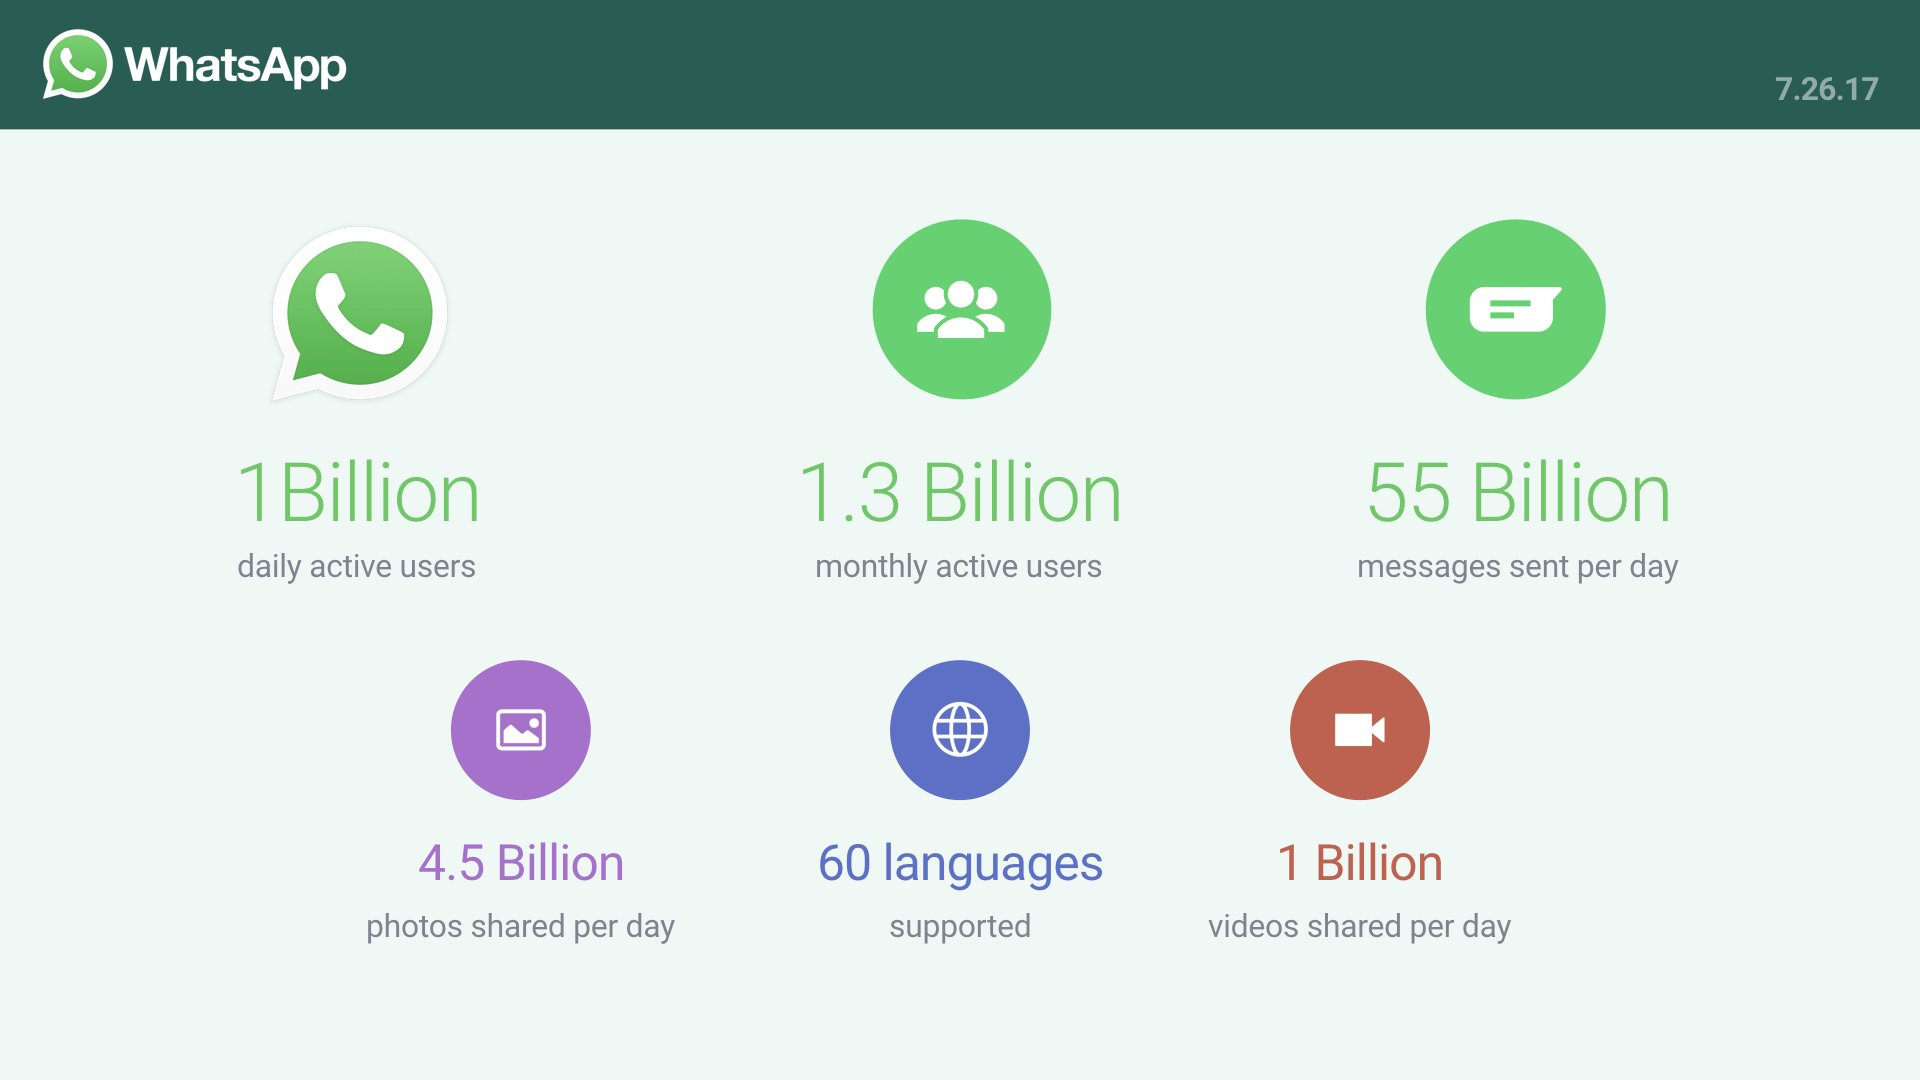 WhatsApp achieved 1 billion Daily Active Users, 55bn sent messages & 4.5bn photographs